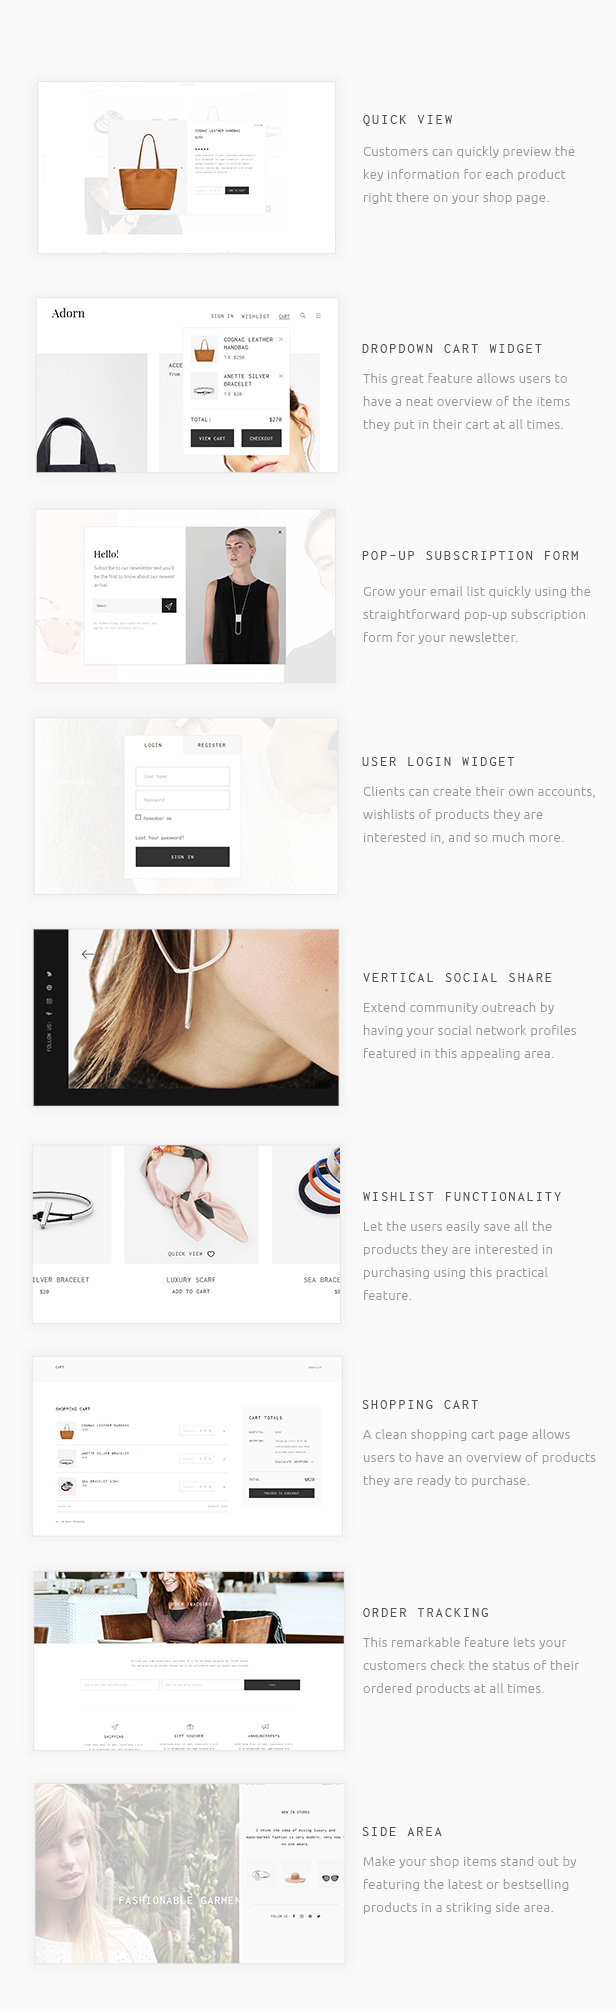 Adorn - A Minimal and Stylish WooCommerce Theme